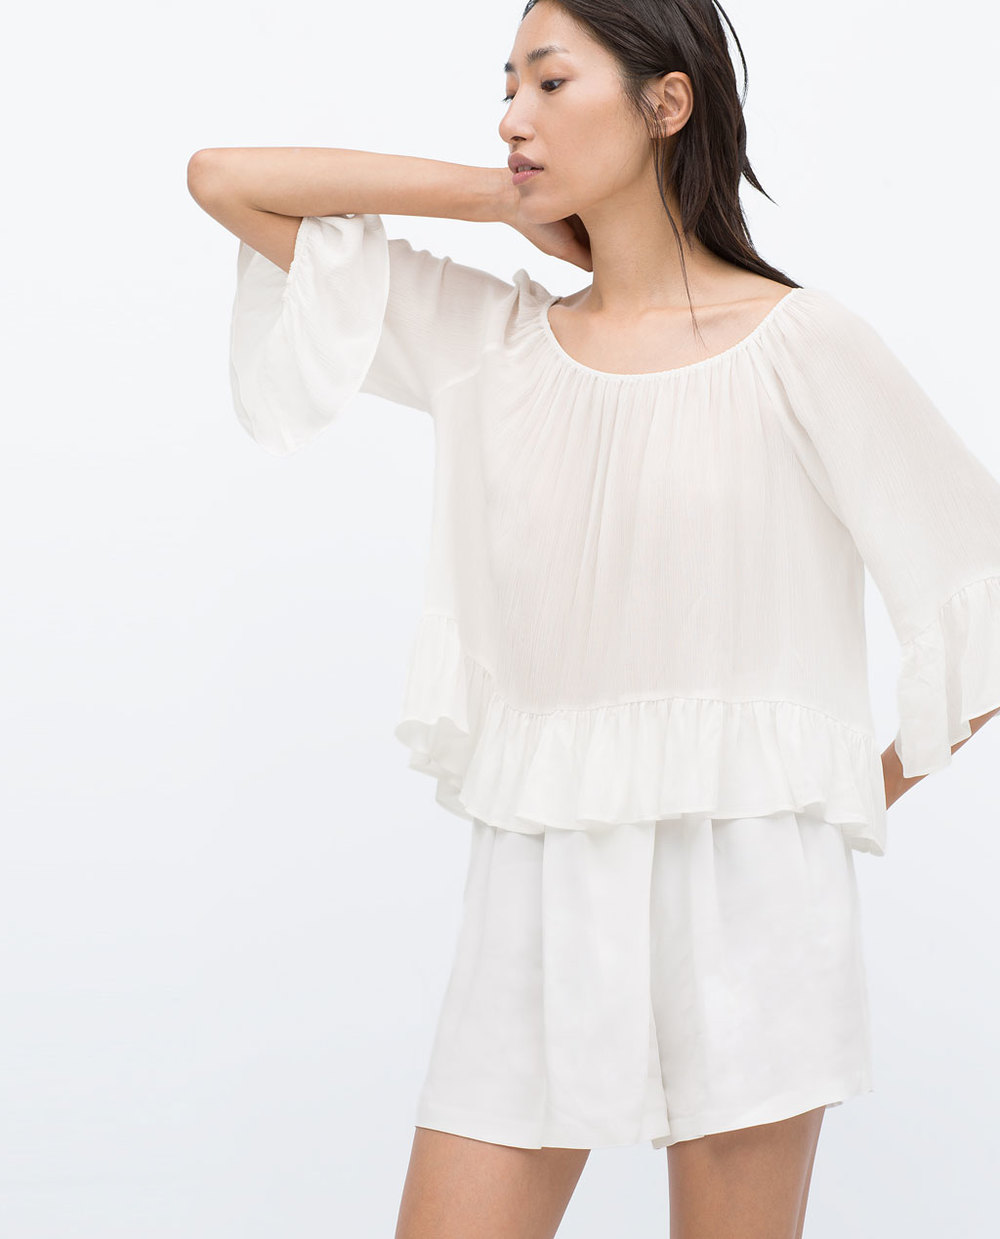 Zara boathouse white blouse